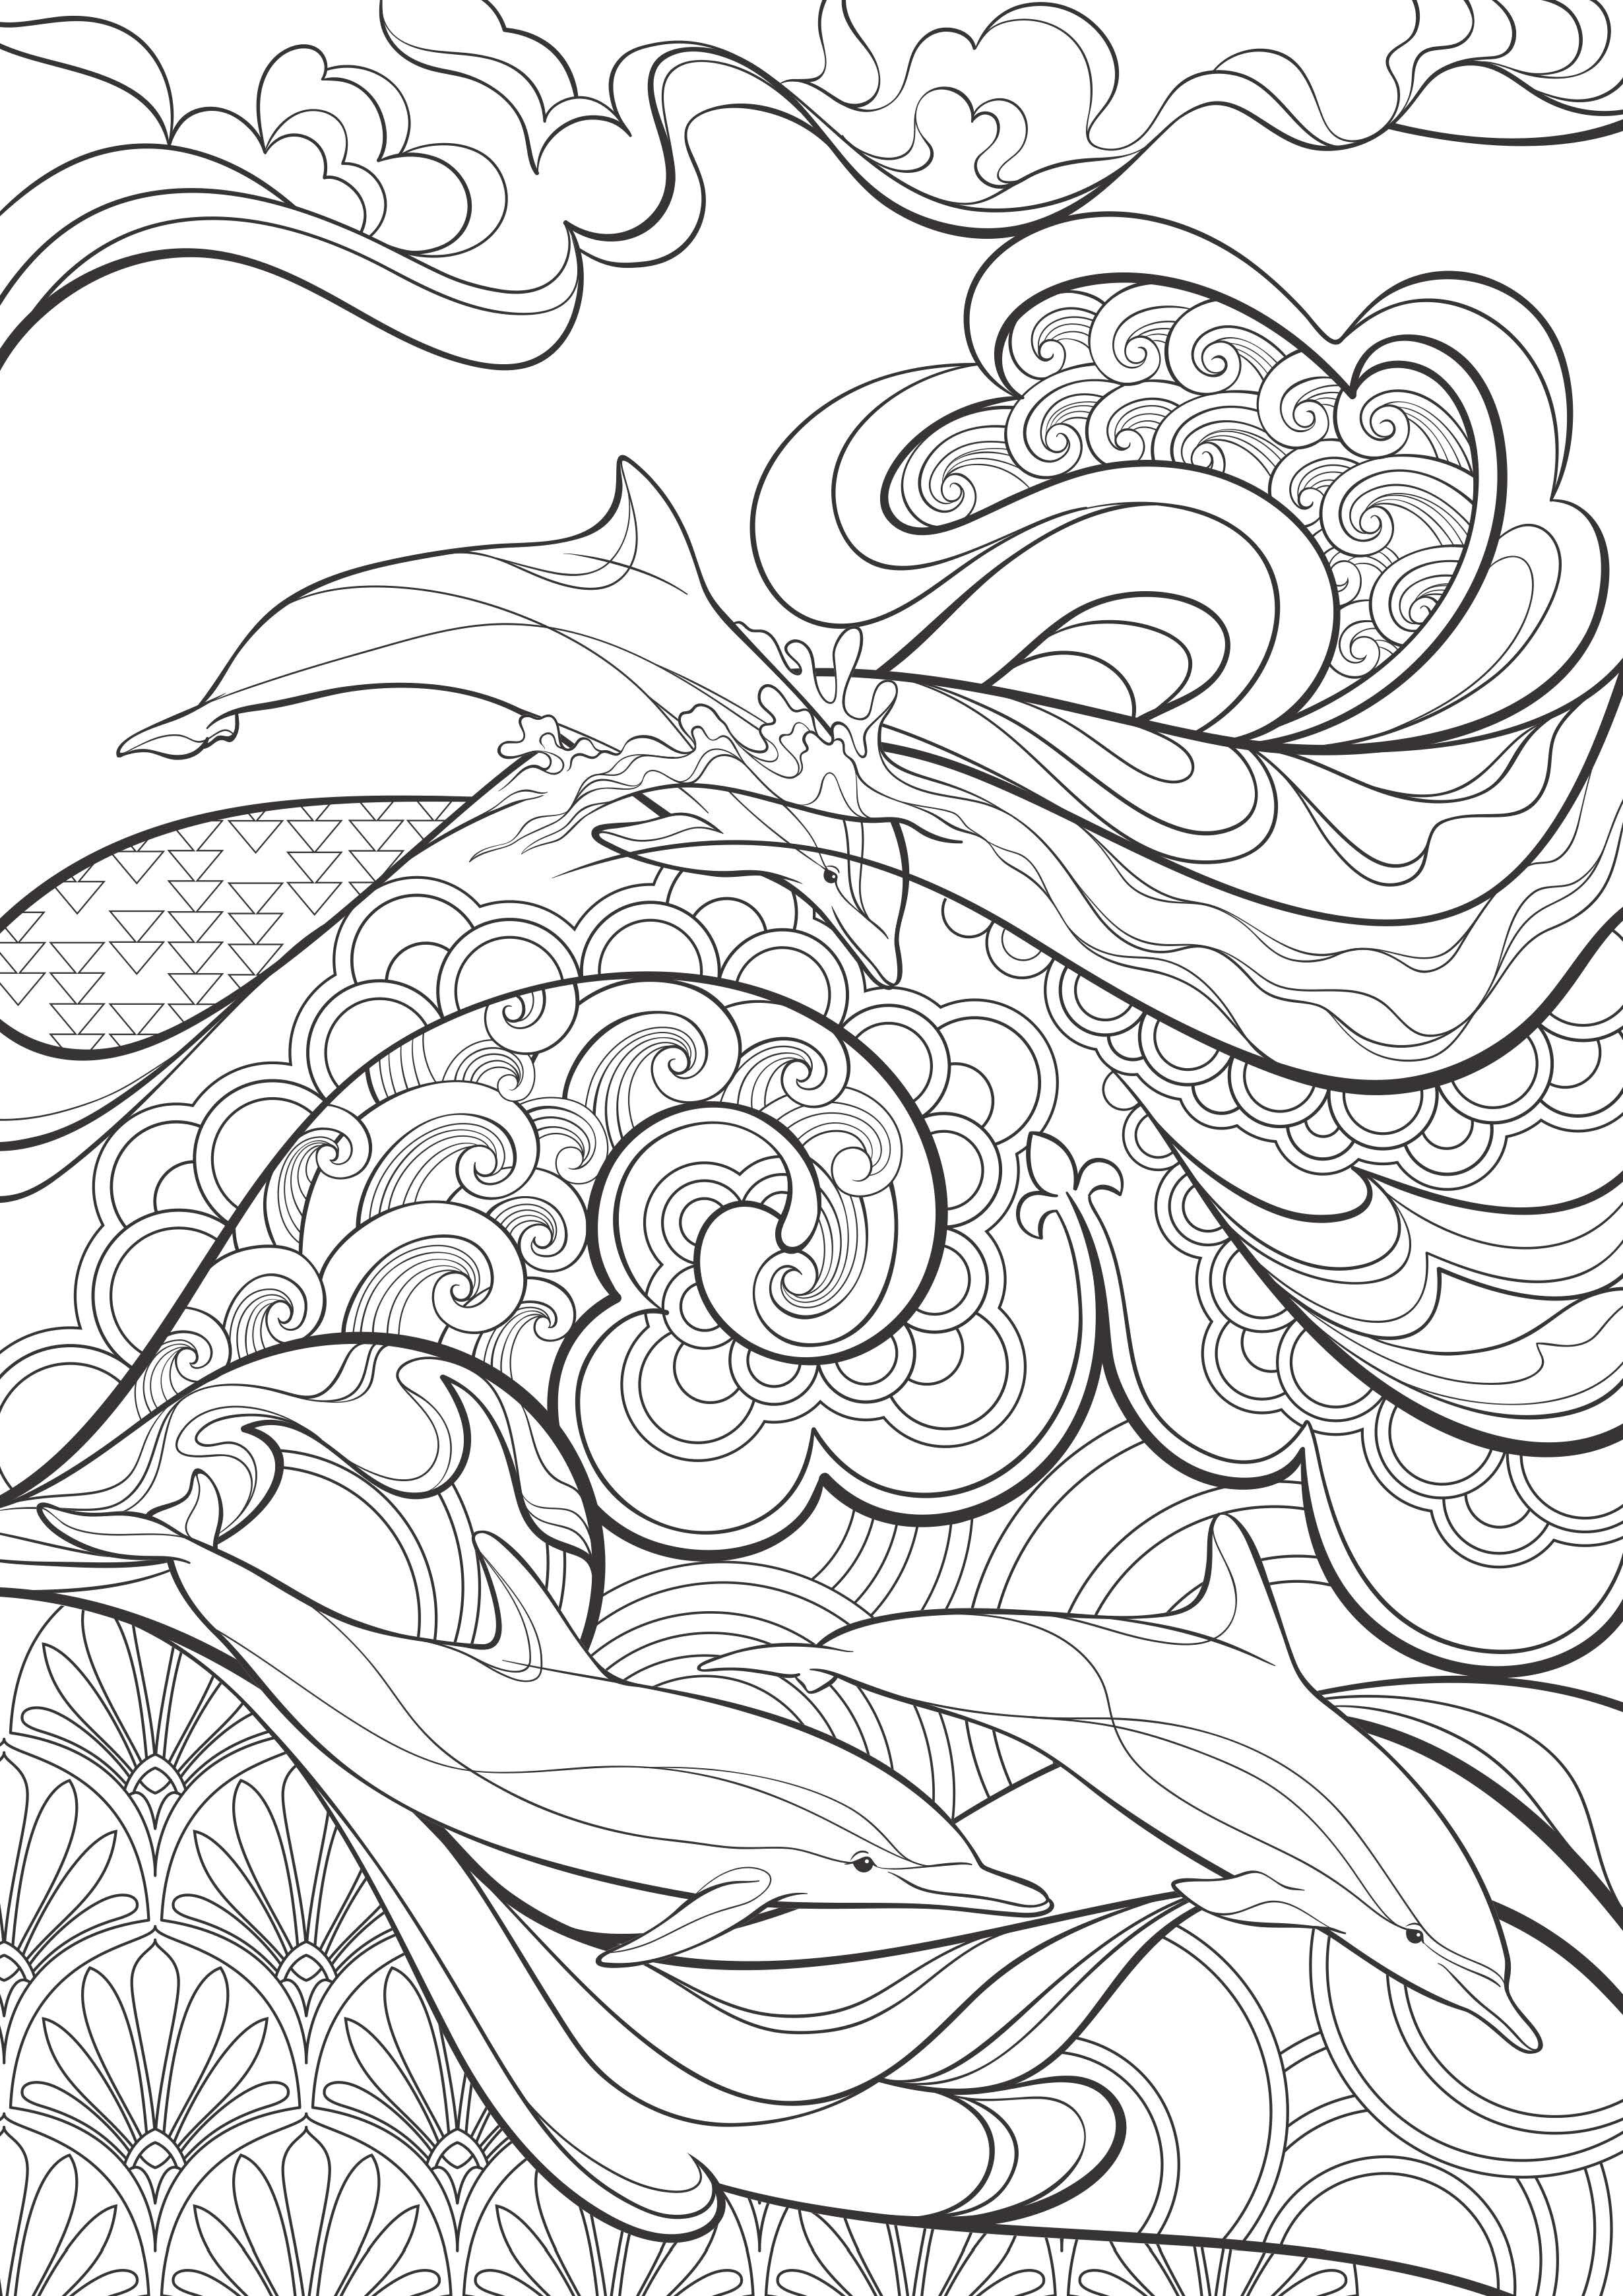 FREE colouring printables for adults and kids — Sistability